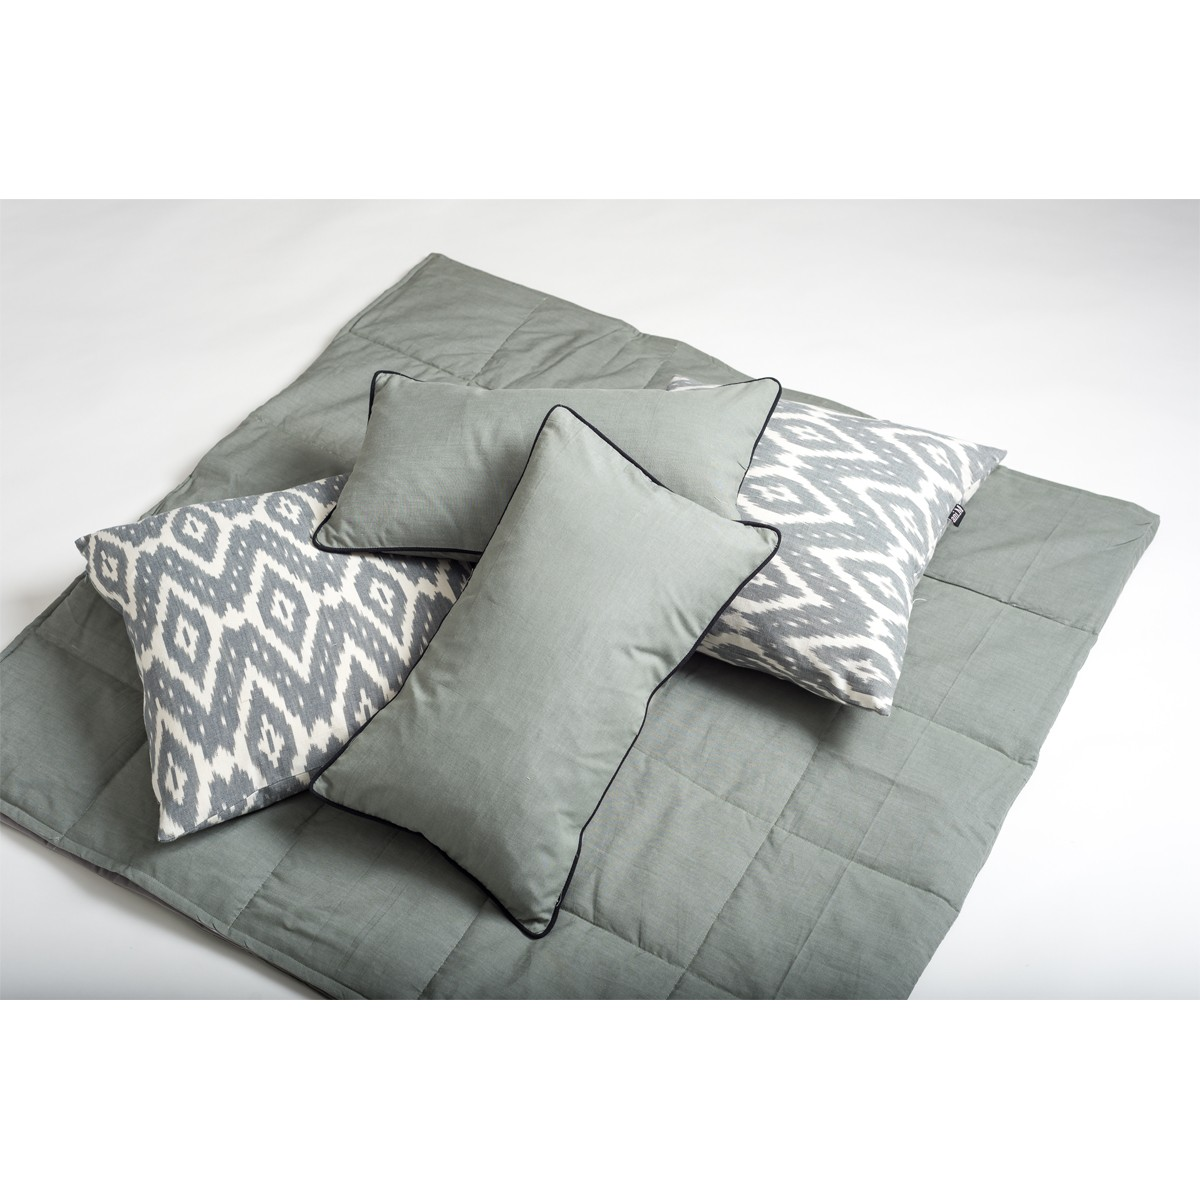 Single grey padded panel throw with box stitch detail